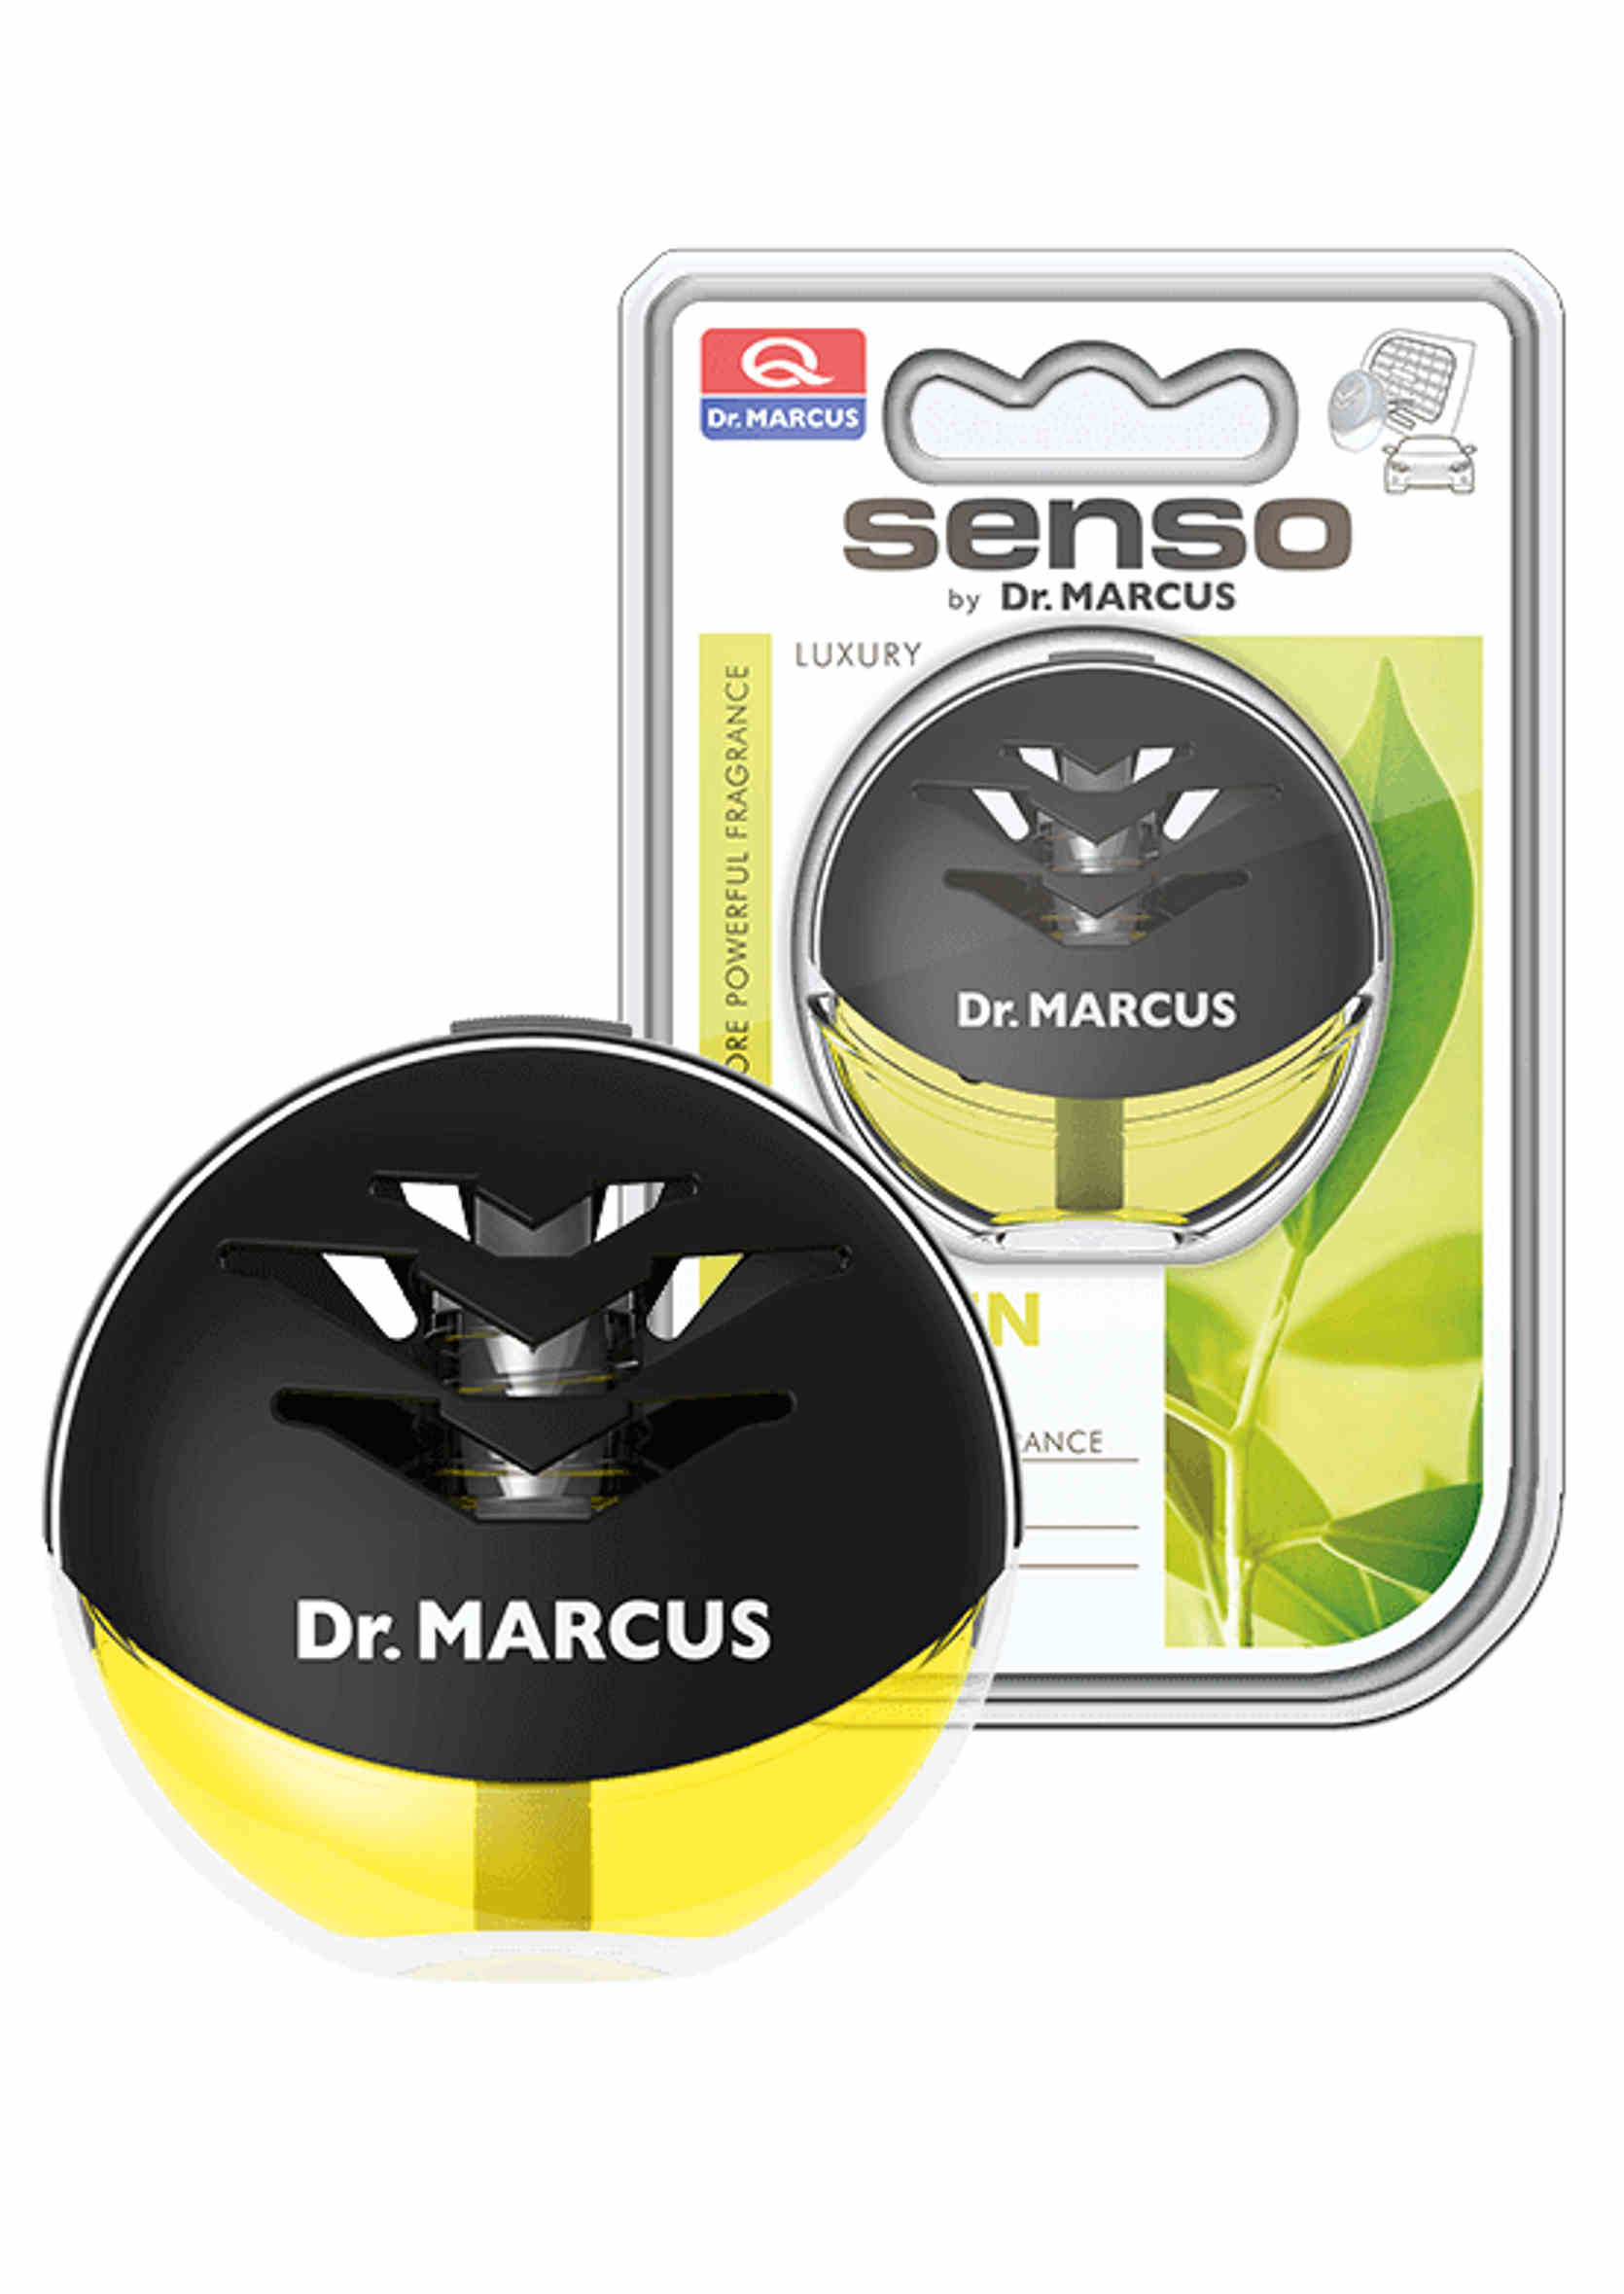 Dr. Marcus Senso Luxury Green Tea 10ml Zapach do Auta